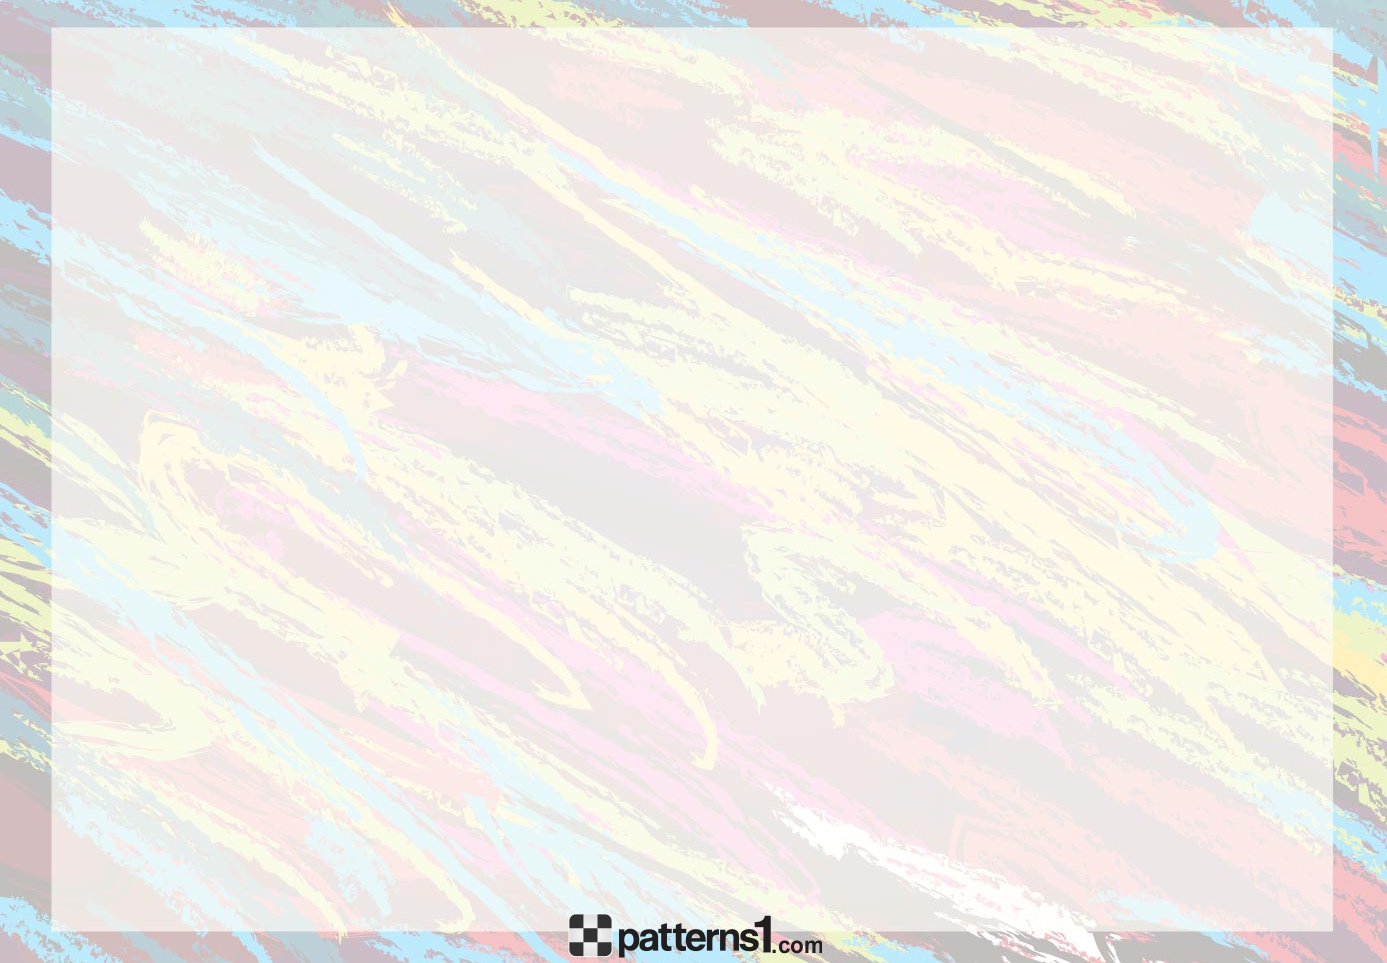 Abstract grunge clipart clip art freeuse download Abstract grunge painted background clipart vector pattern design ... clip art freeuse download